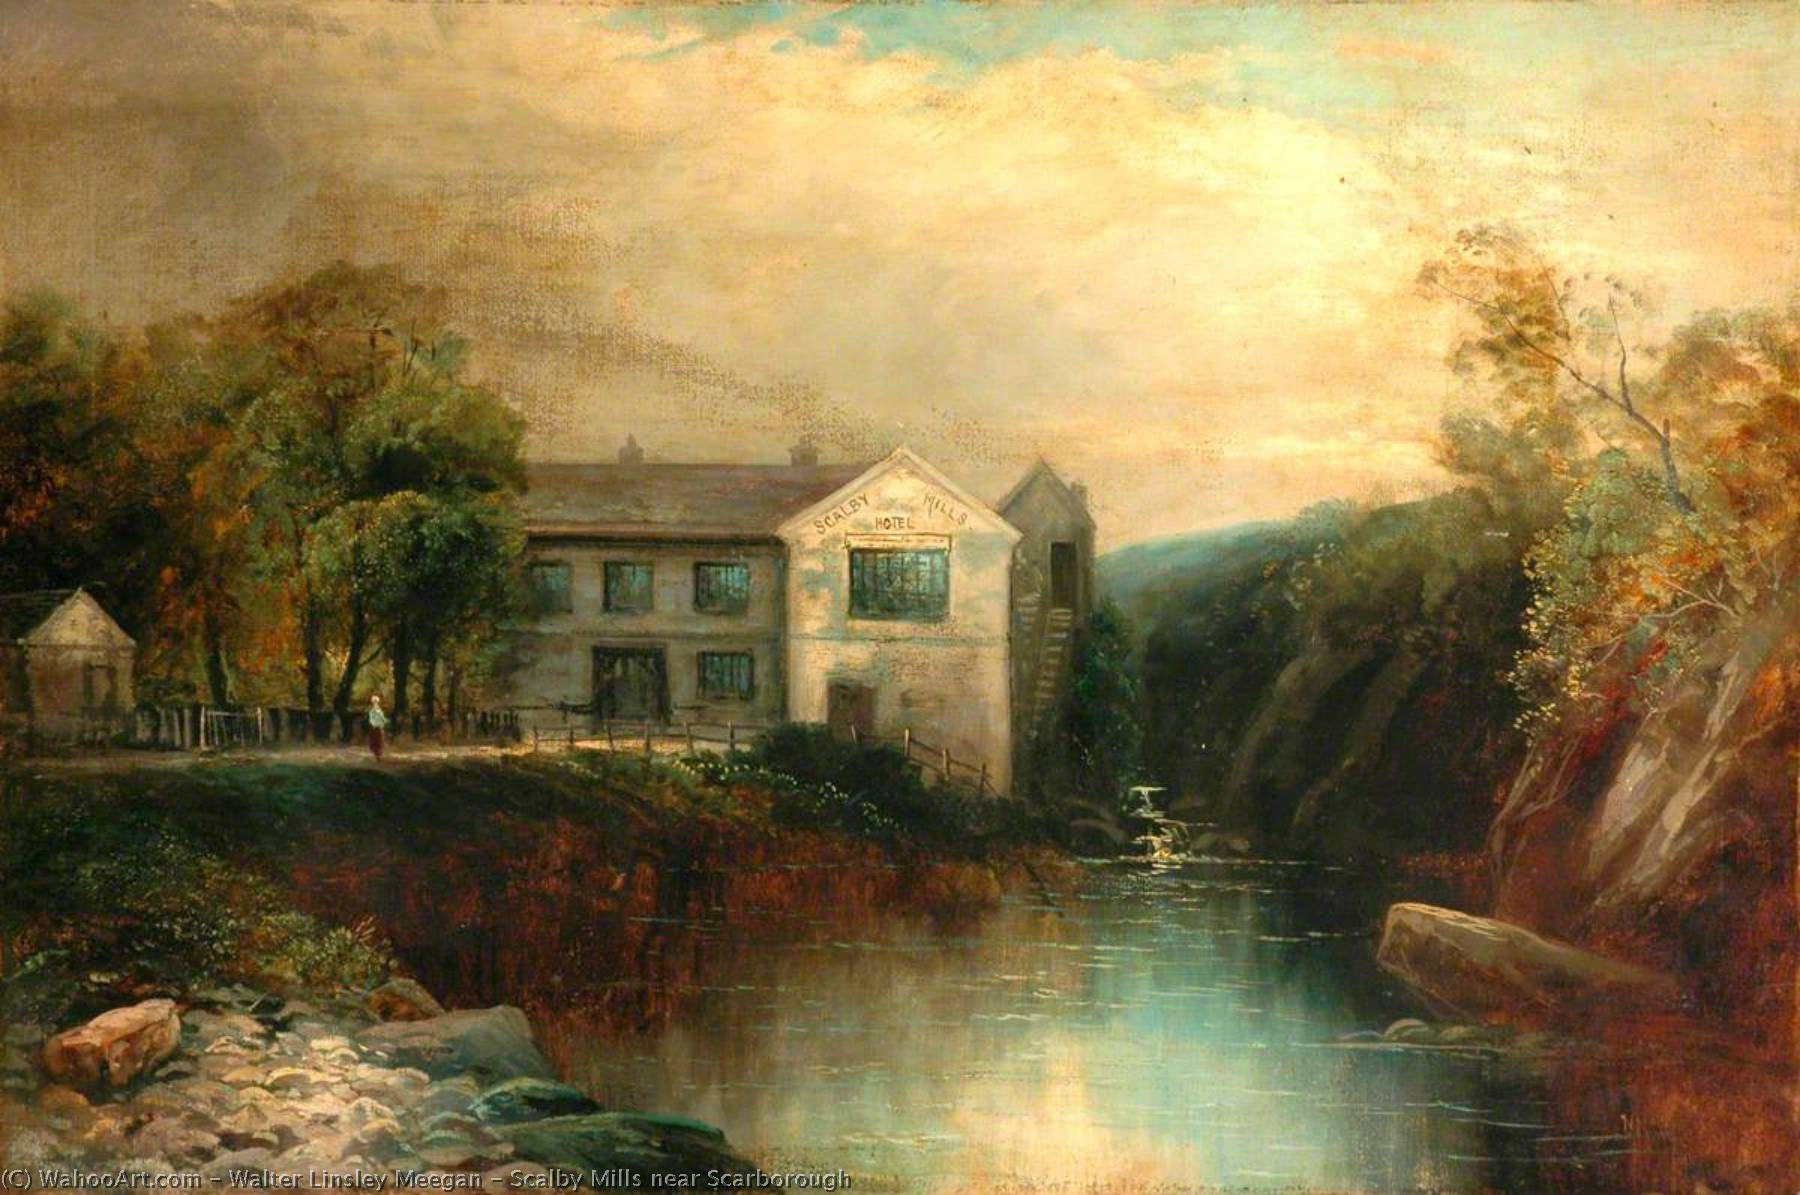 Scalby Mills near Scarborough by Walter Linsley Meegan | Famous Paintings Reproductions | WahooArt.com